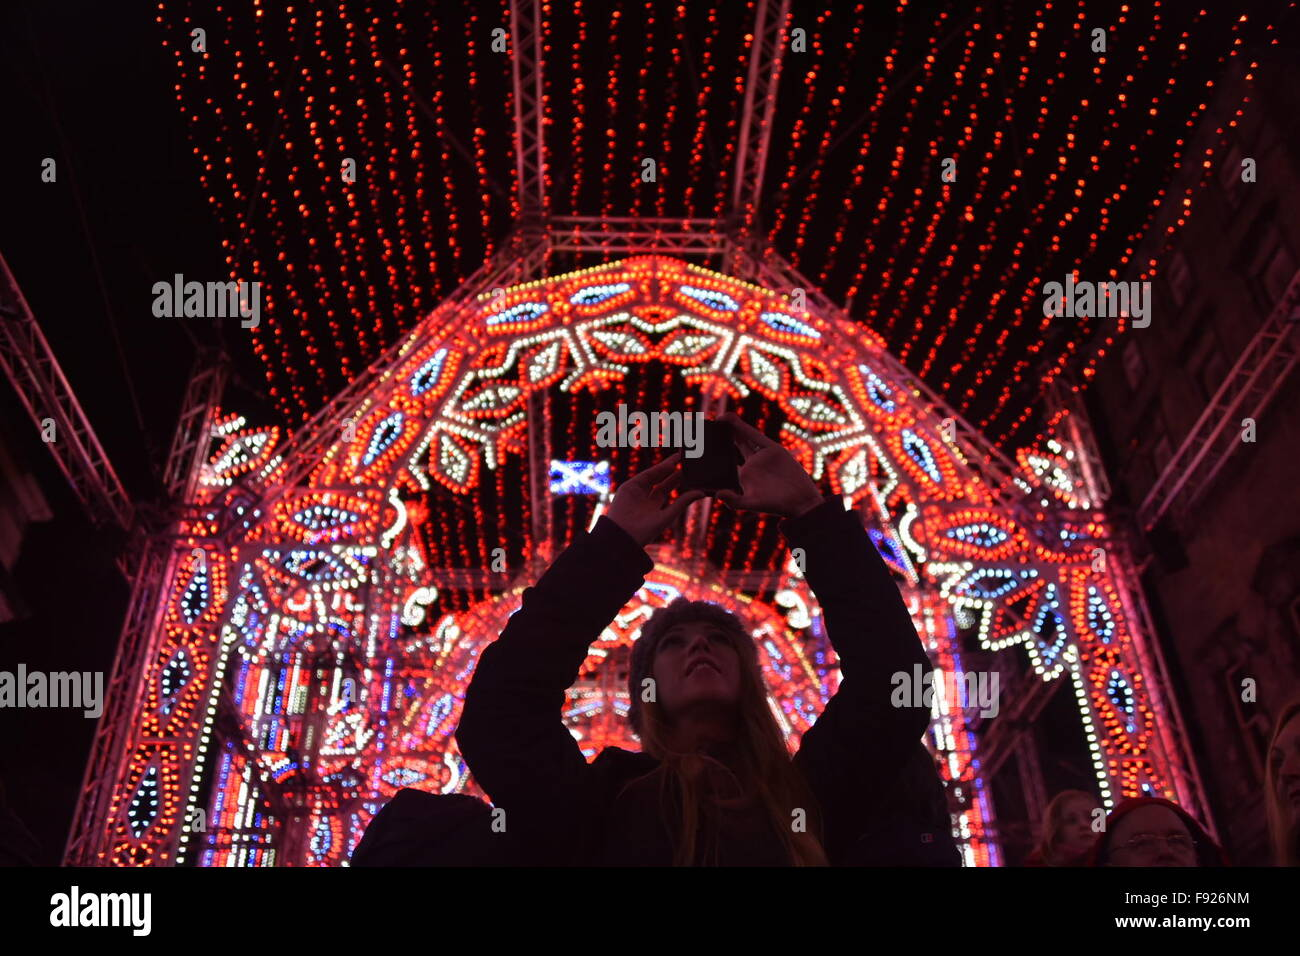 Edinburgh, Scotland, UK. 13th December, 2015. A woman takes a photograph of The Street of Light Christmas light - Stock Image